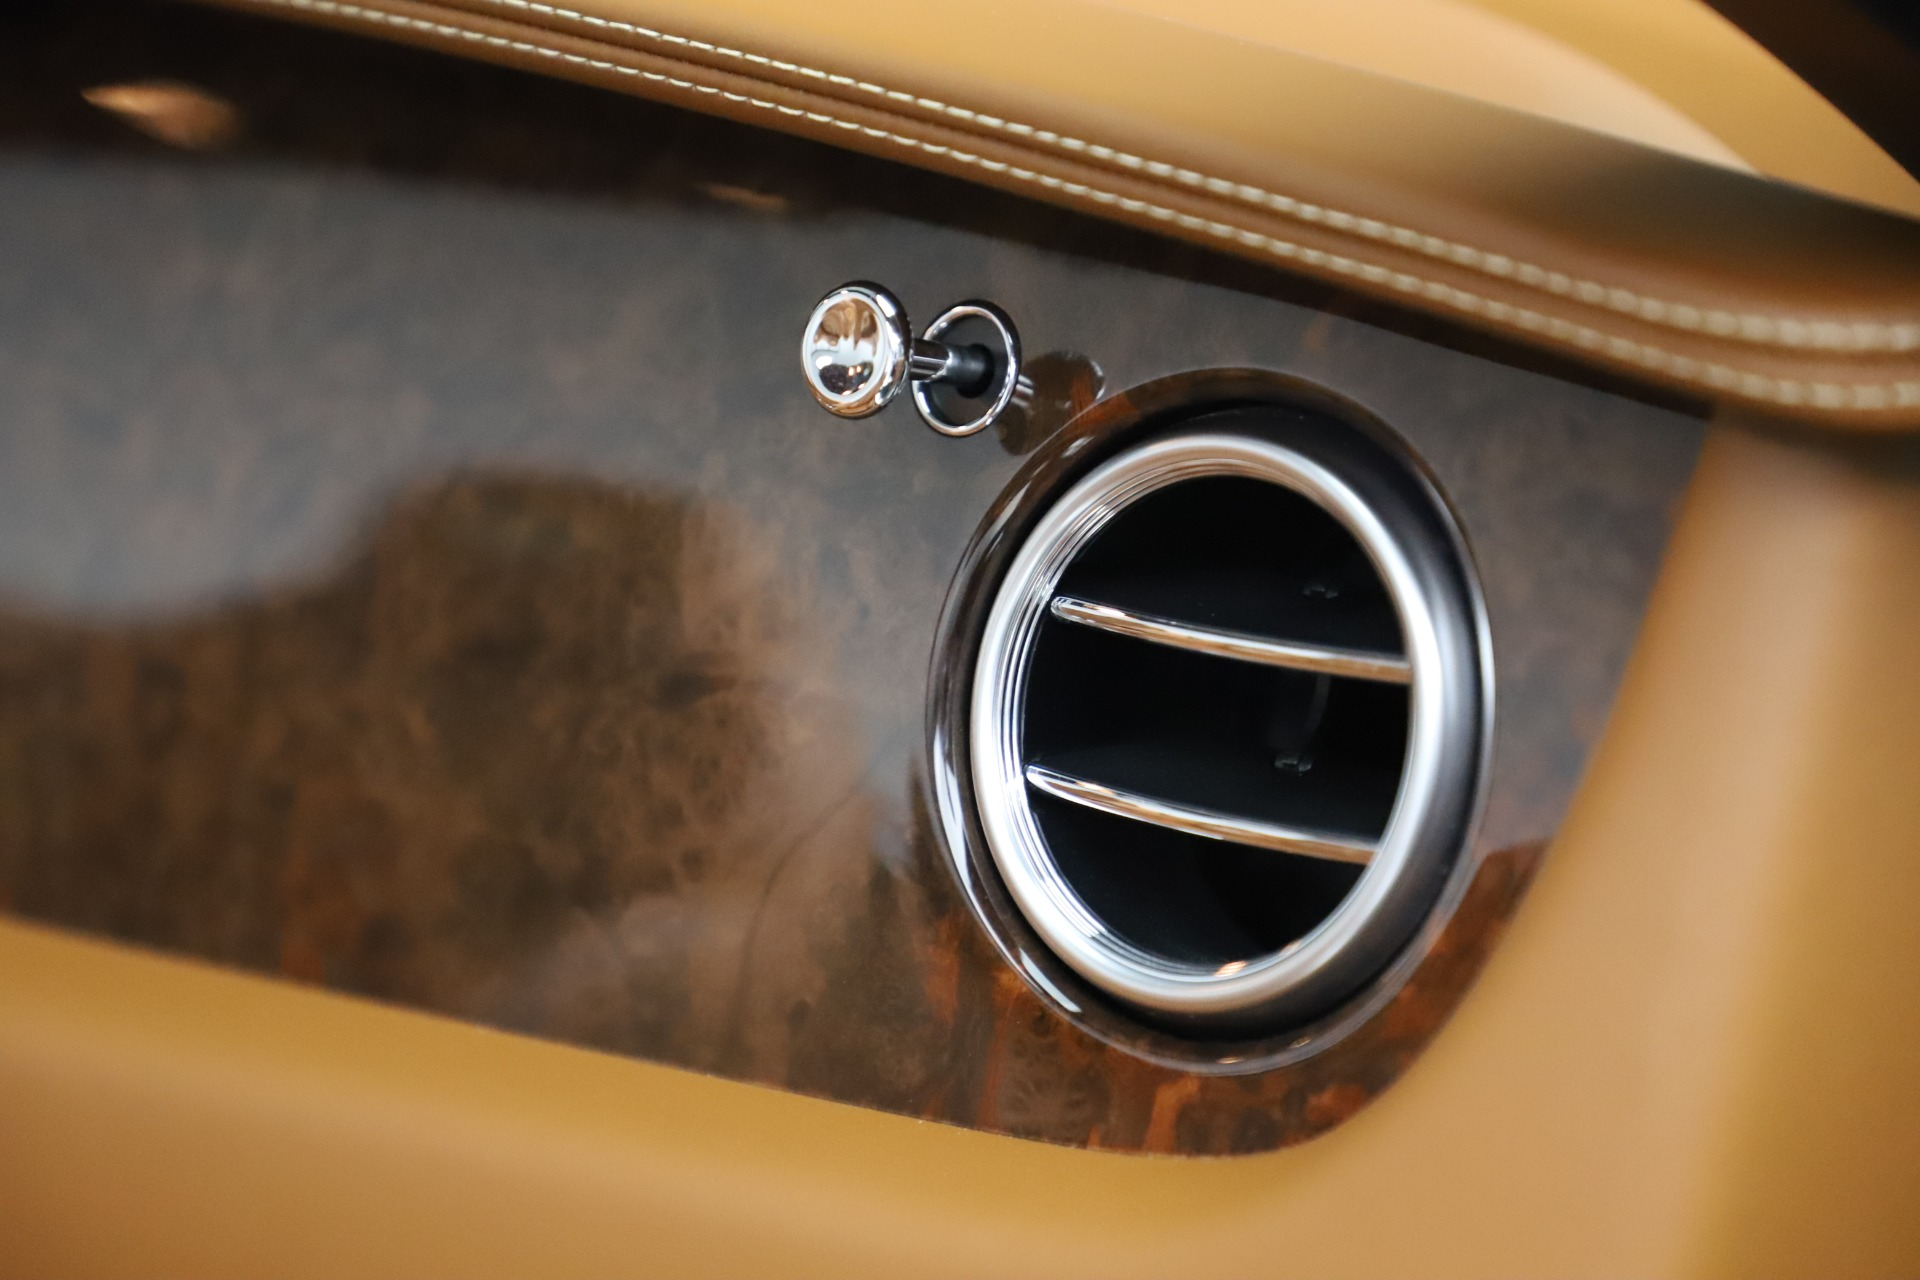 Used 2013 Bentley Continental GT W12 For Sale In Westport, CT 3505_p34